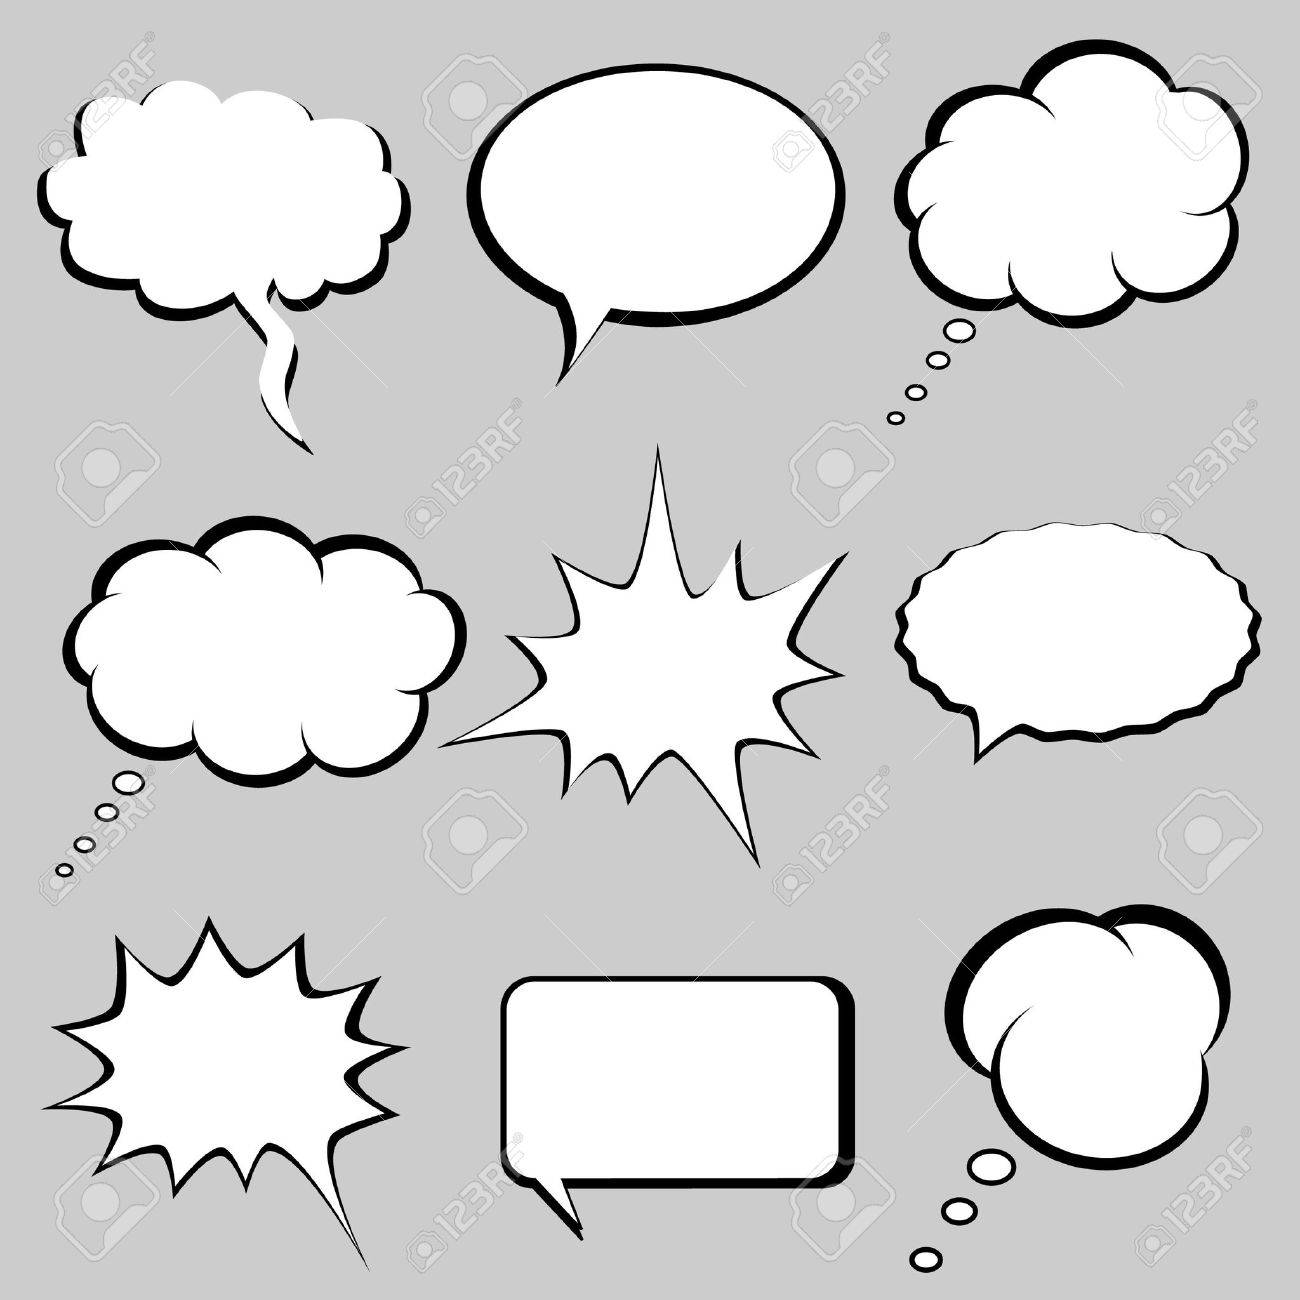 Speech and thought bubbles, balloons Stock Photo - 7717469